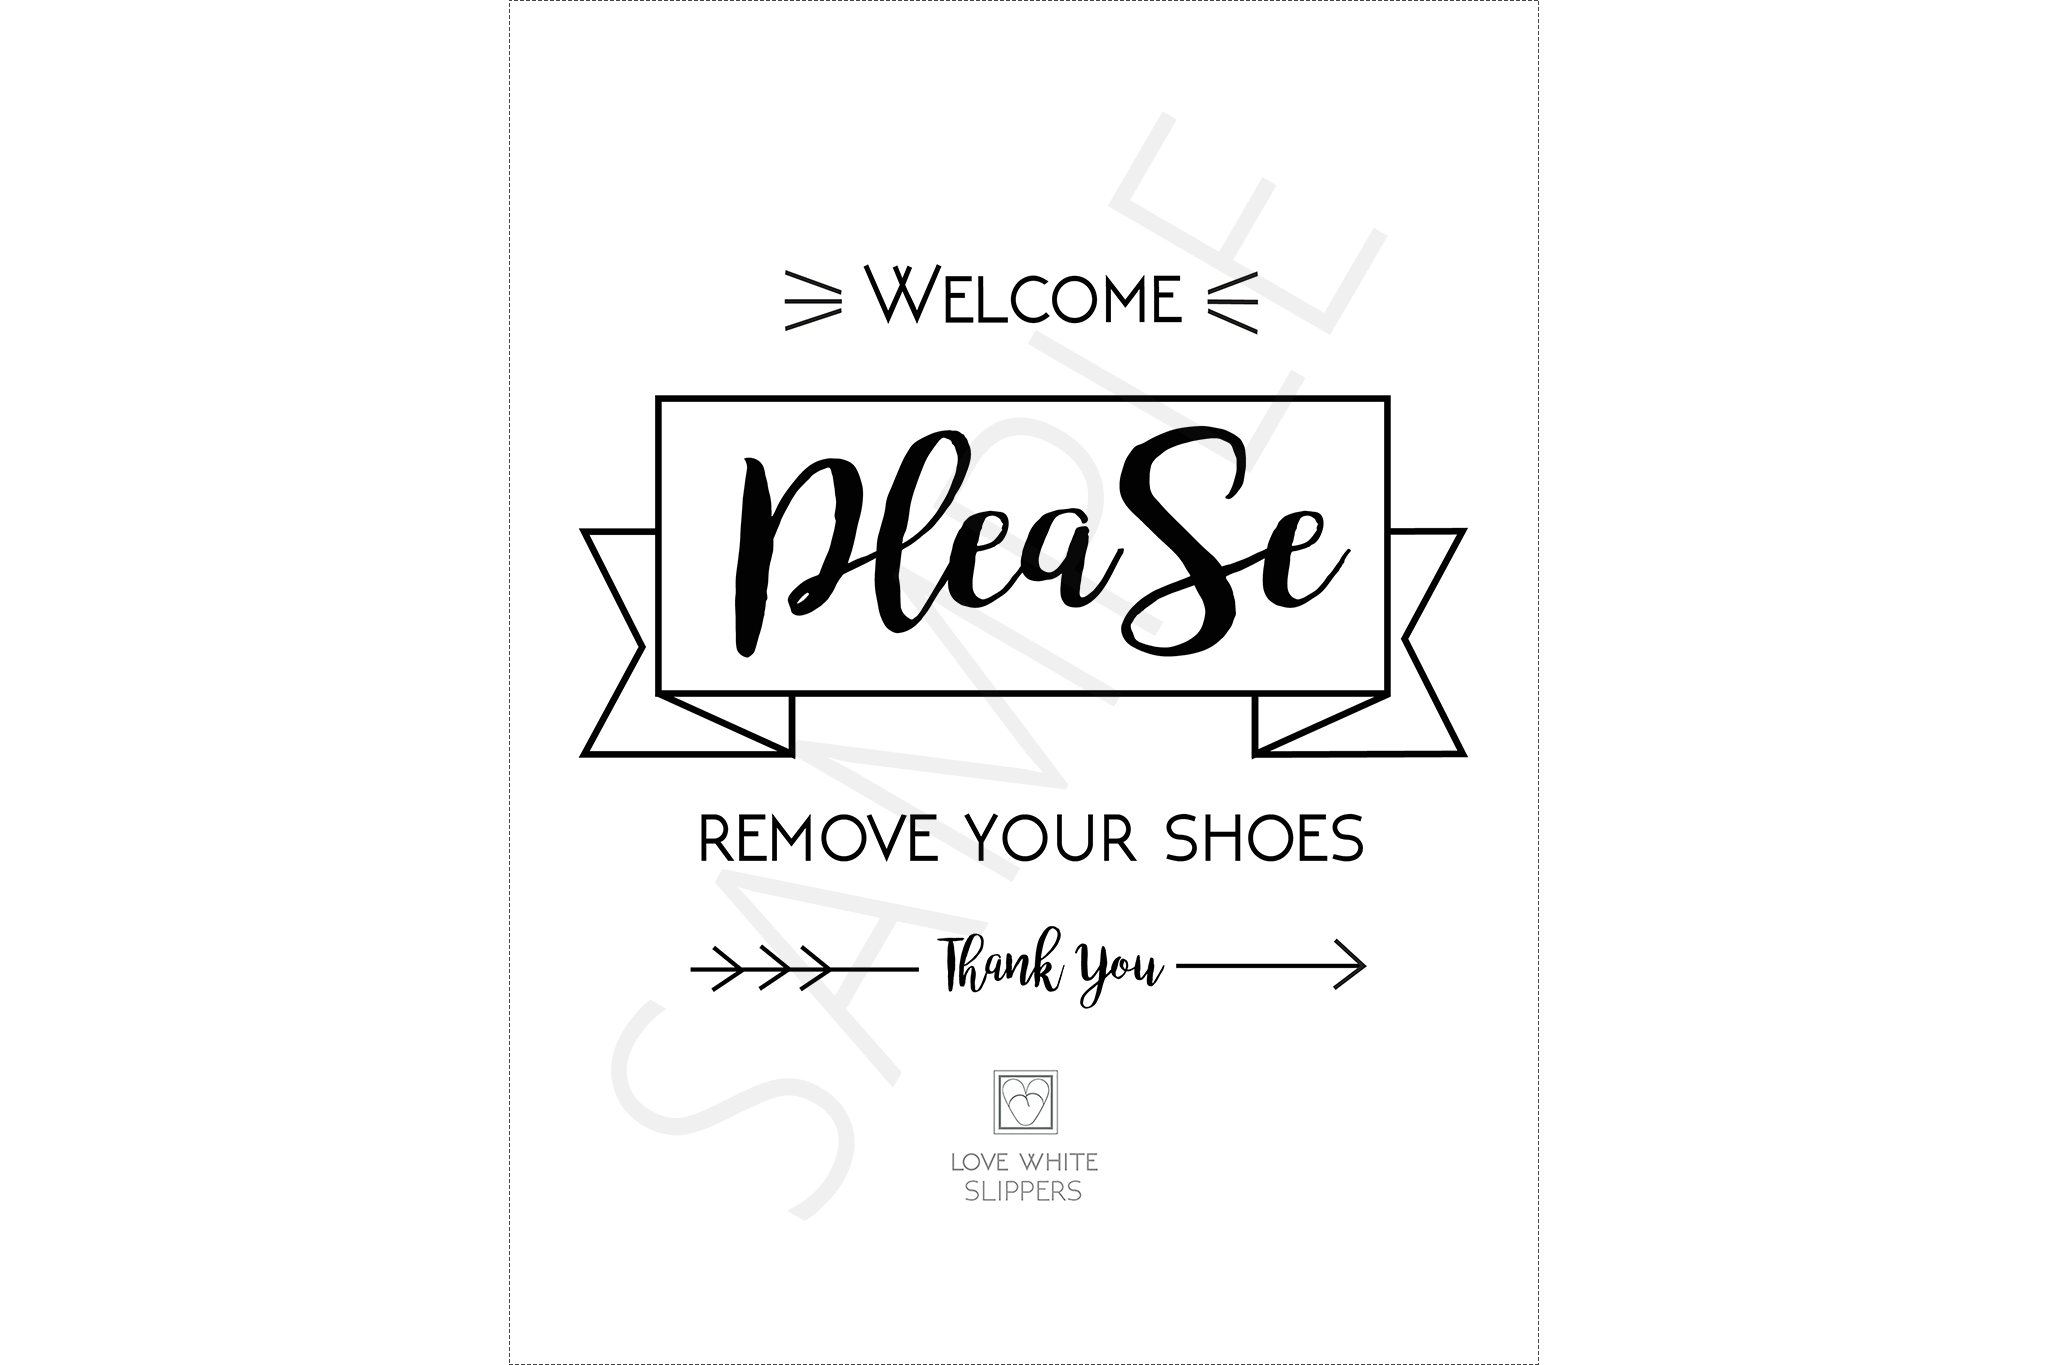 photograph regarding Please Remove Your Shoes Sign Printable identified as Welcome, Remember to Get rid of Your Sneakers